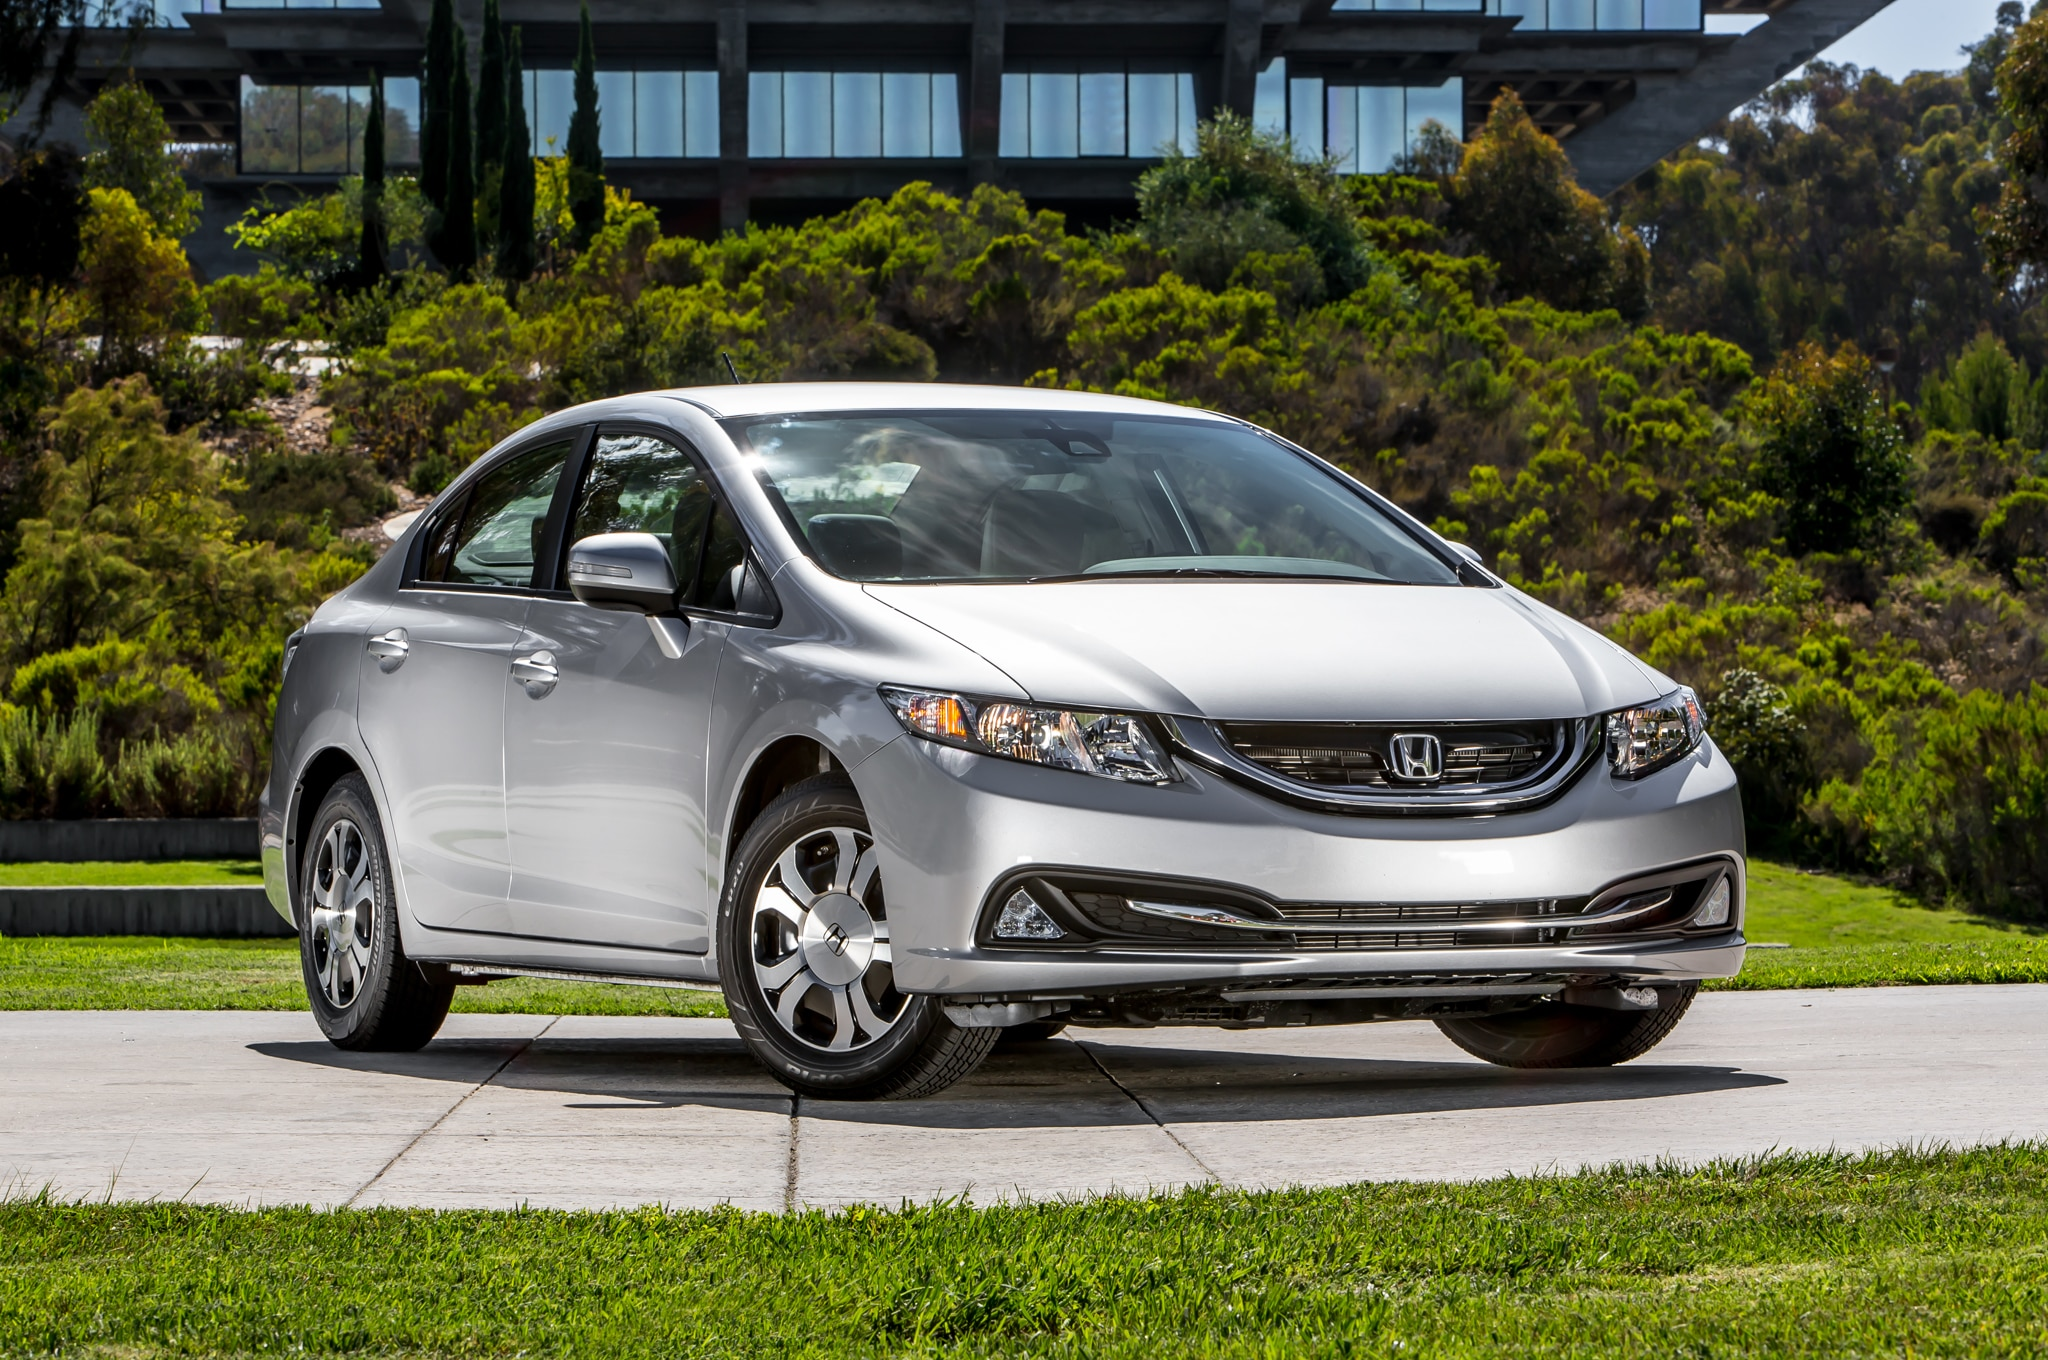 Discover which Honda Civic model is right for you The Civic Family represents the best in reliability quality design and attention to detail that you expect from Honda